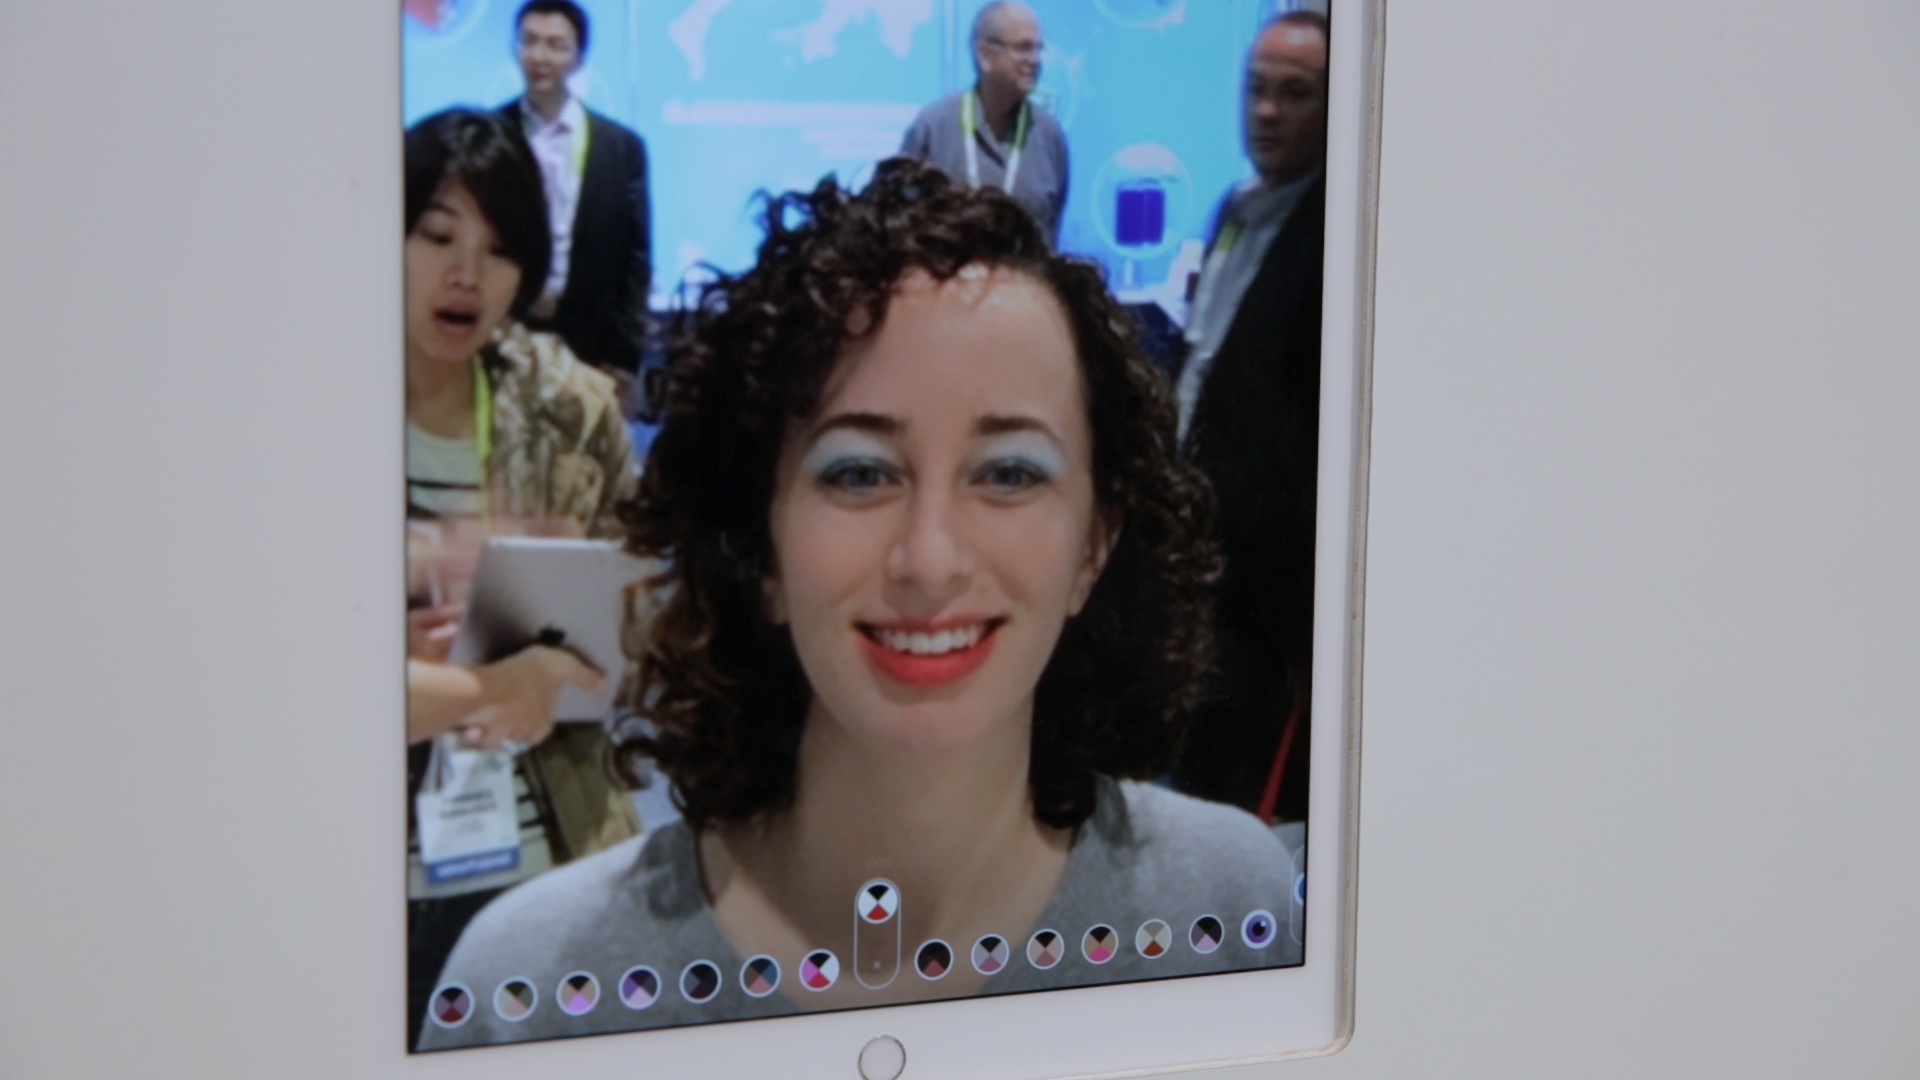 Video: Get a makeover! This virtual makeup mirror changes up your look